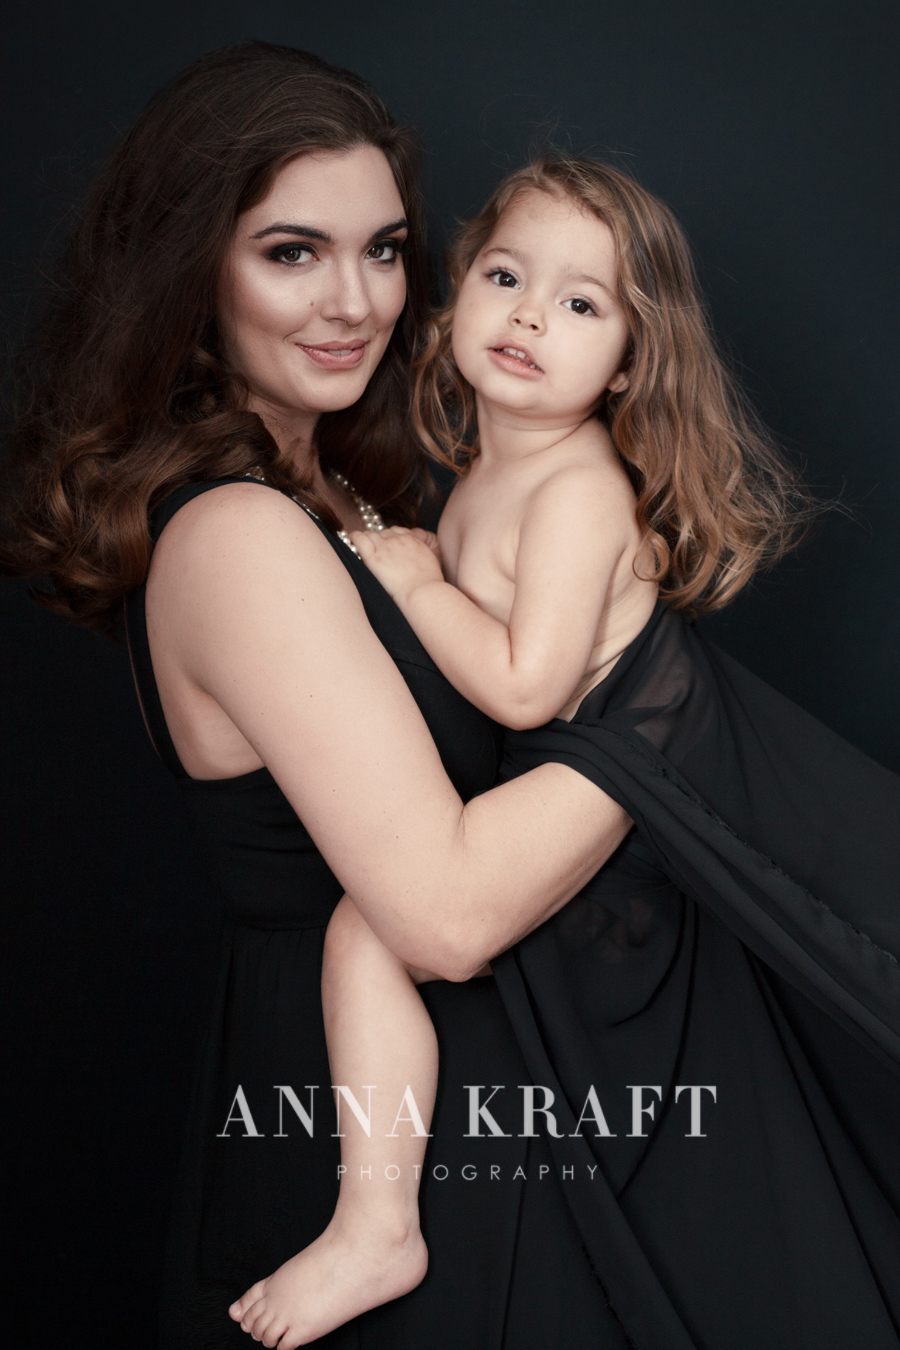 anna_kraft_photography_georgetown_square_studio_family_motherhood_daughter_portrait-35.jpg